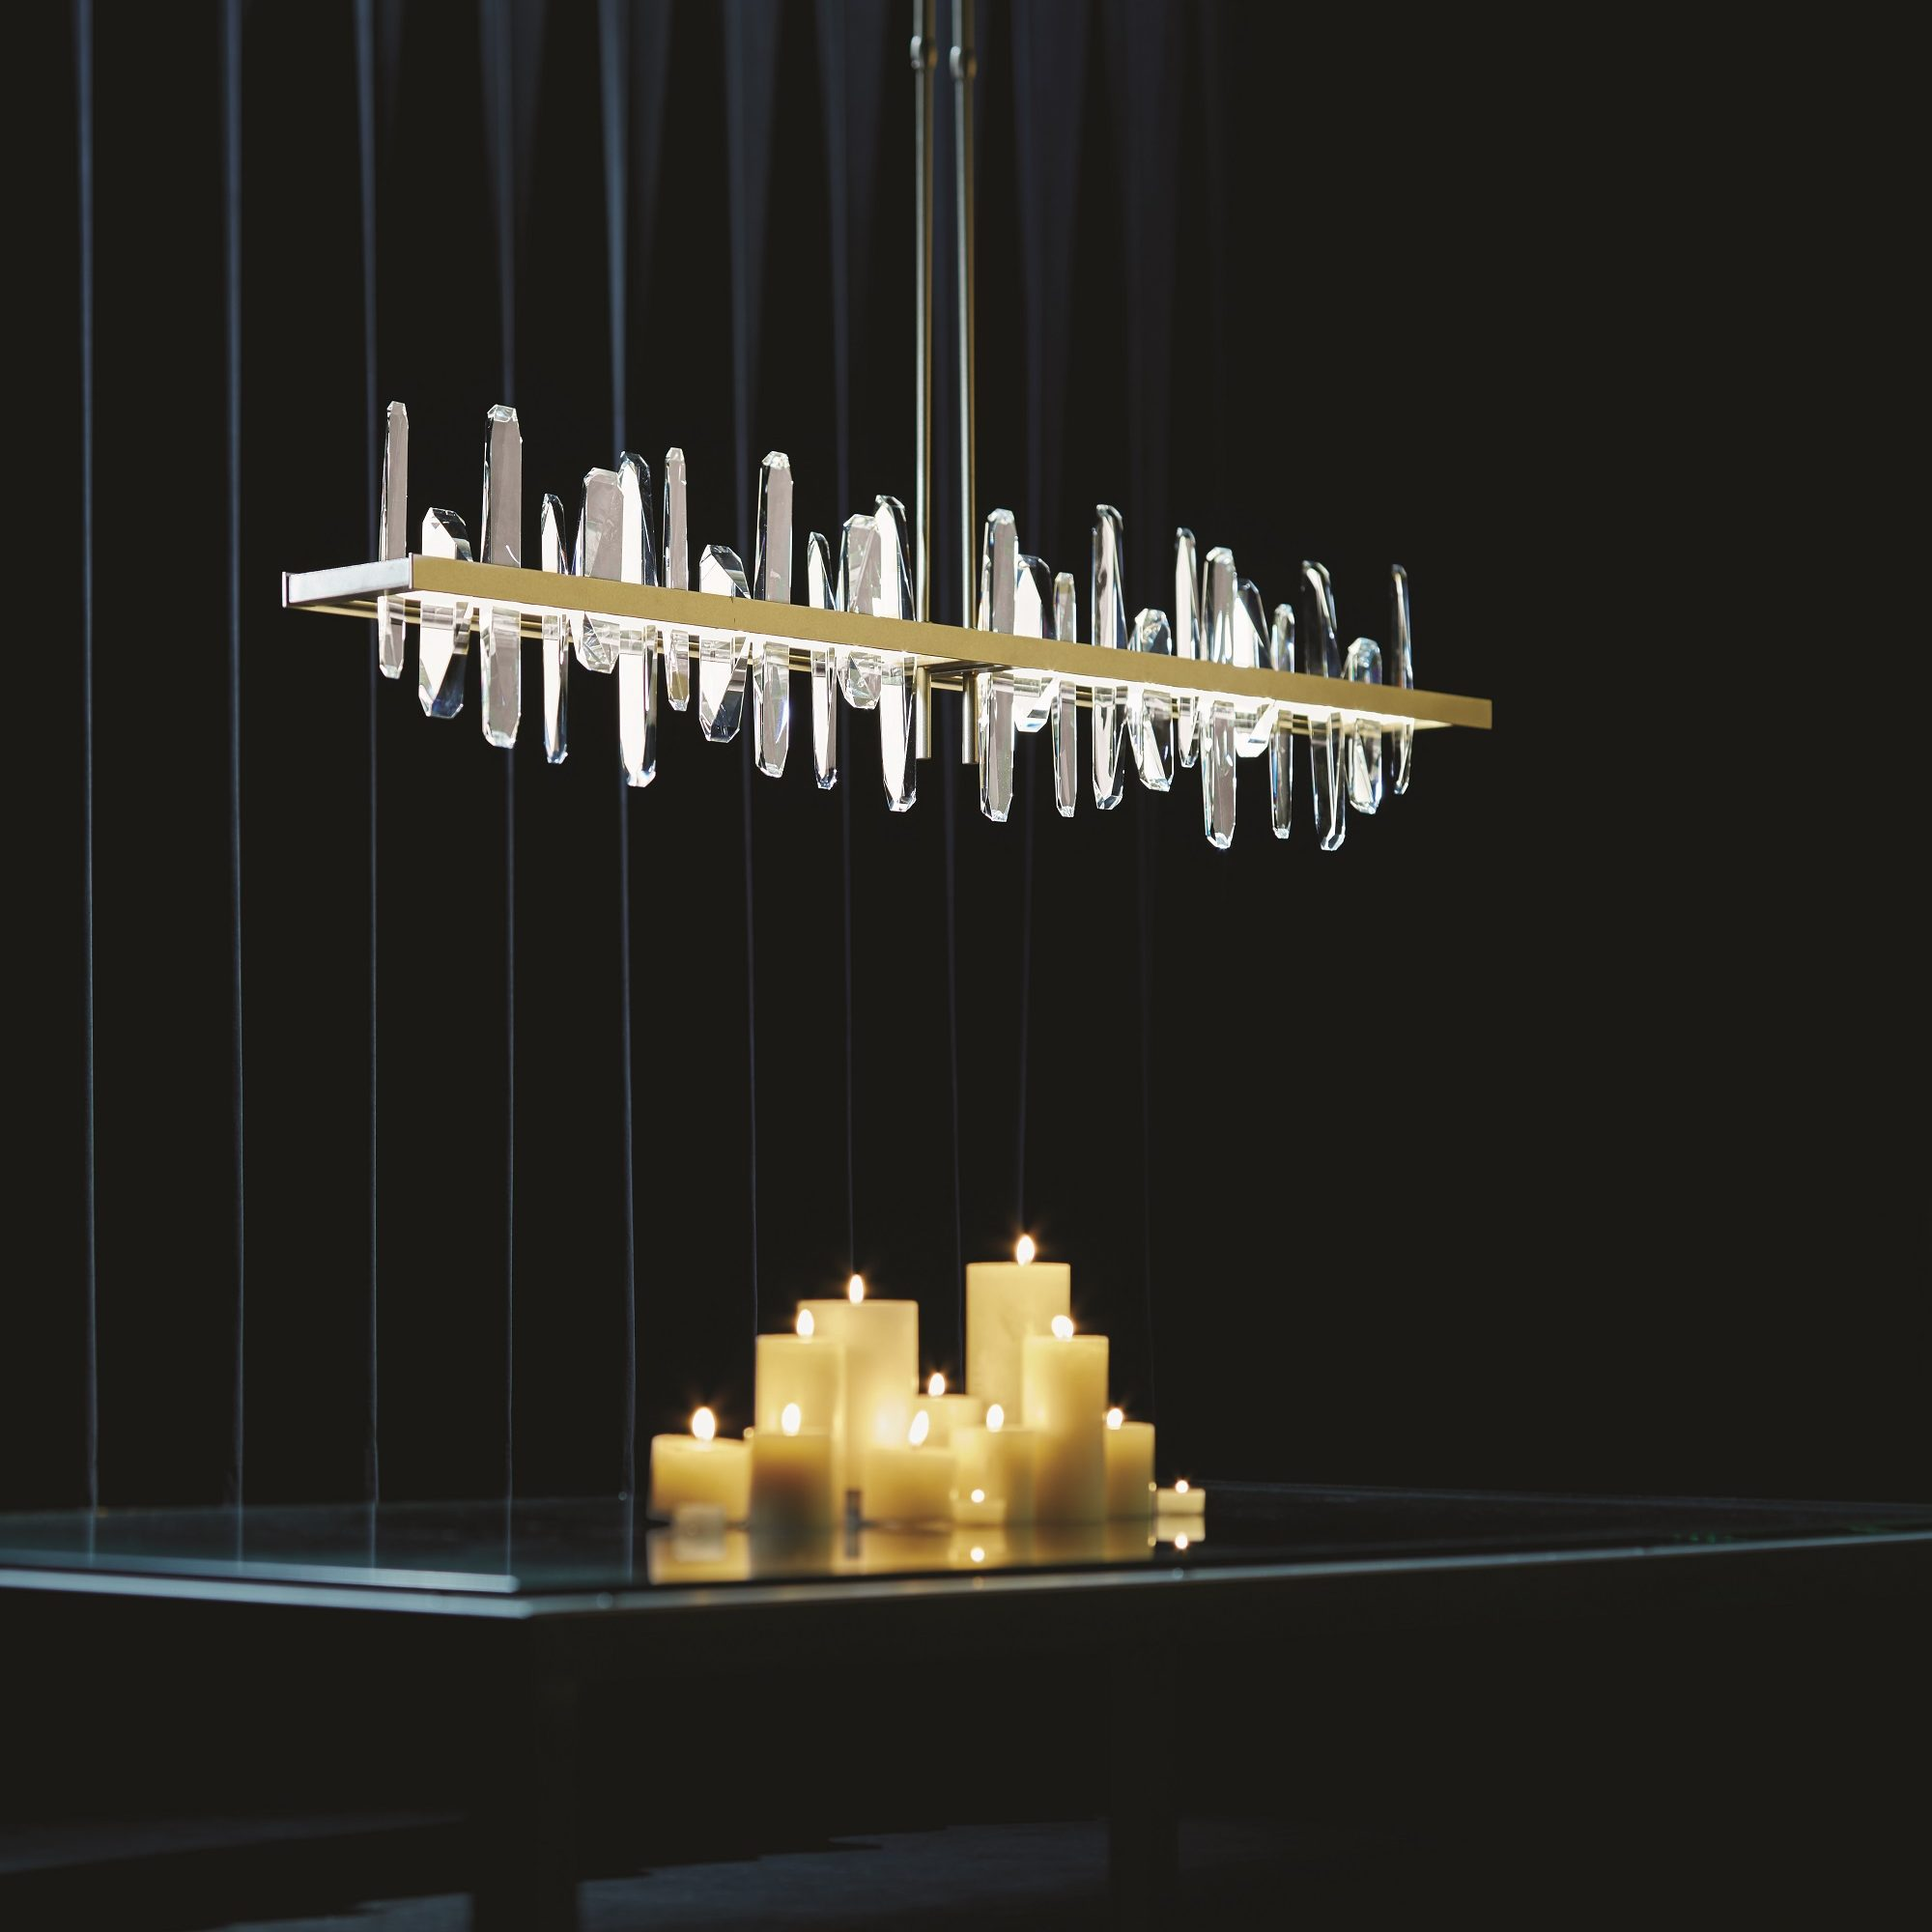 lighting-designs-subtle-versus-statement-makers